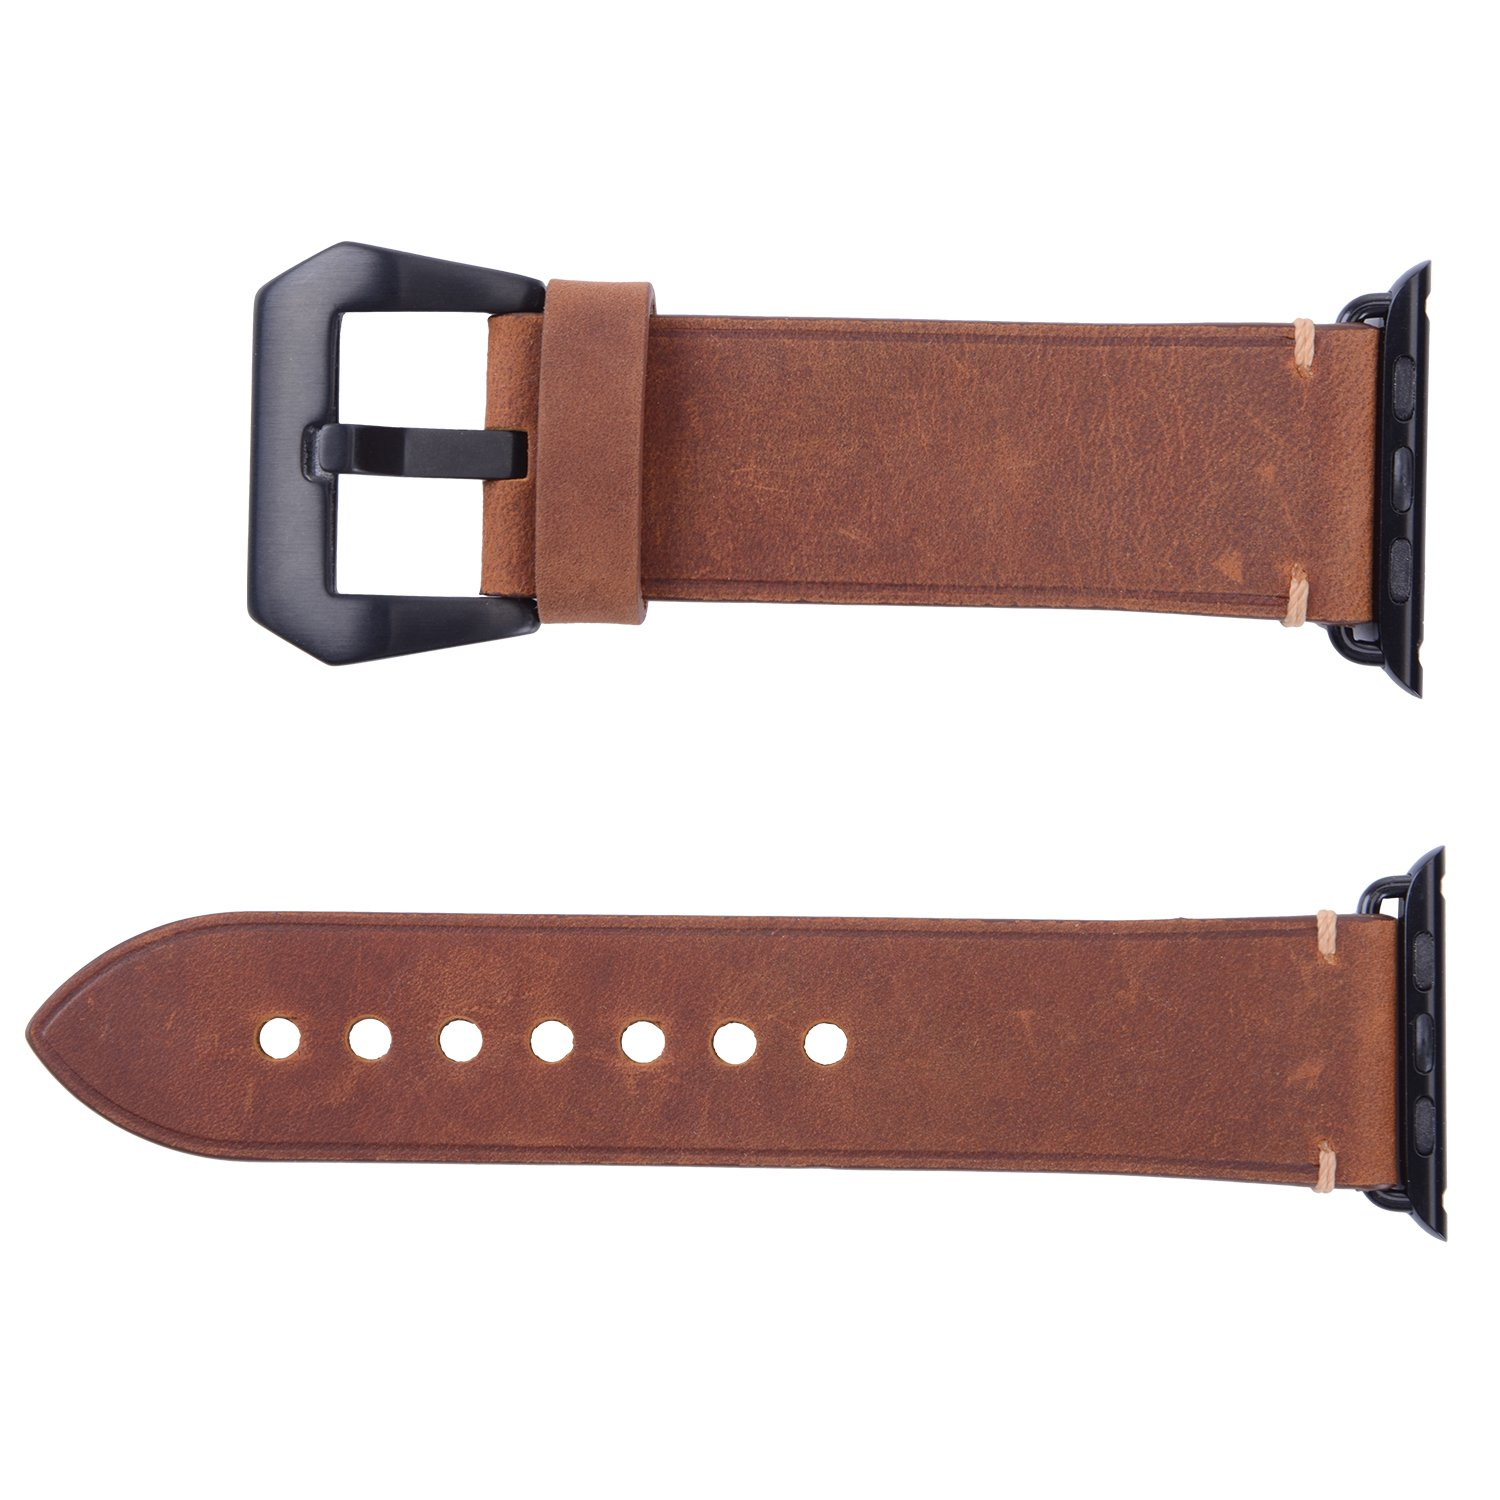 For 42mm Apple Watch Band, Genuine Leather iWatch Strap with Black Metal Clasp Buckle for Apple Watch Series 3 Series 2 Series 1 Sport Edition (42mm Dark Brown) by AMMZO (Image #3)